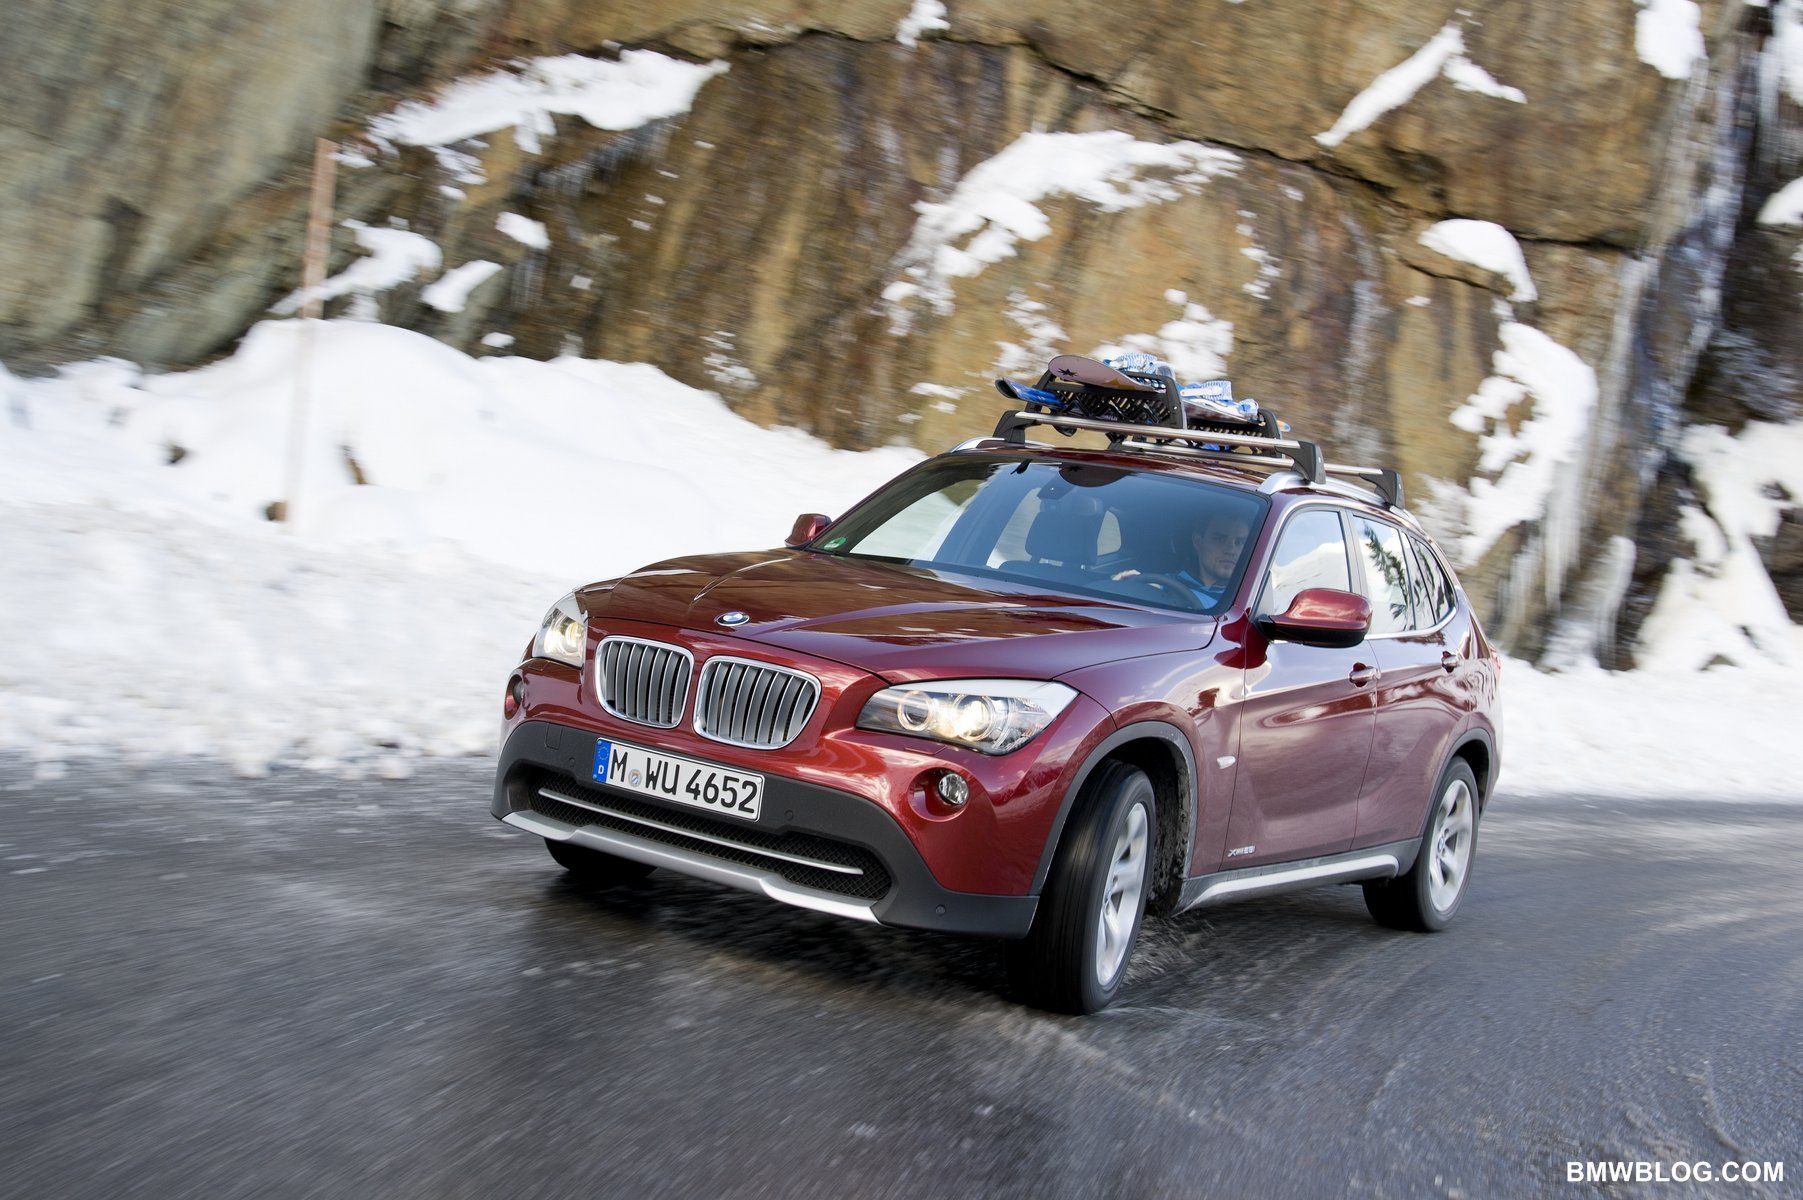 Bmwblog Comparison Bmw X1 Xdrive28i Vs Bmw X3 Xdrive28i